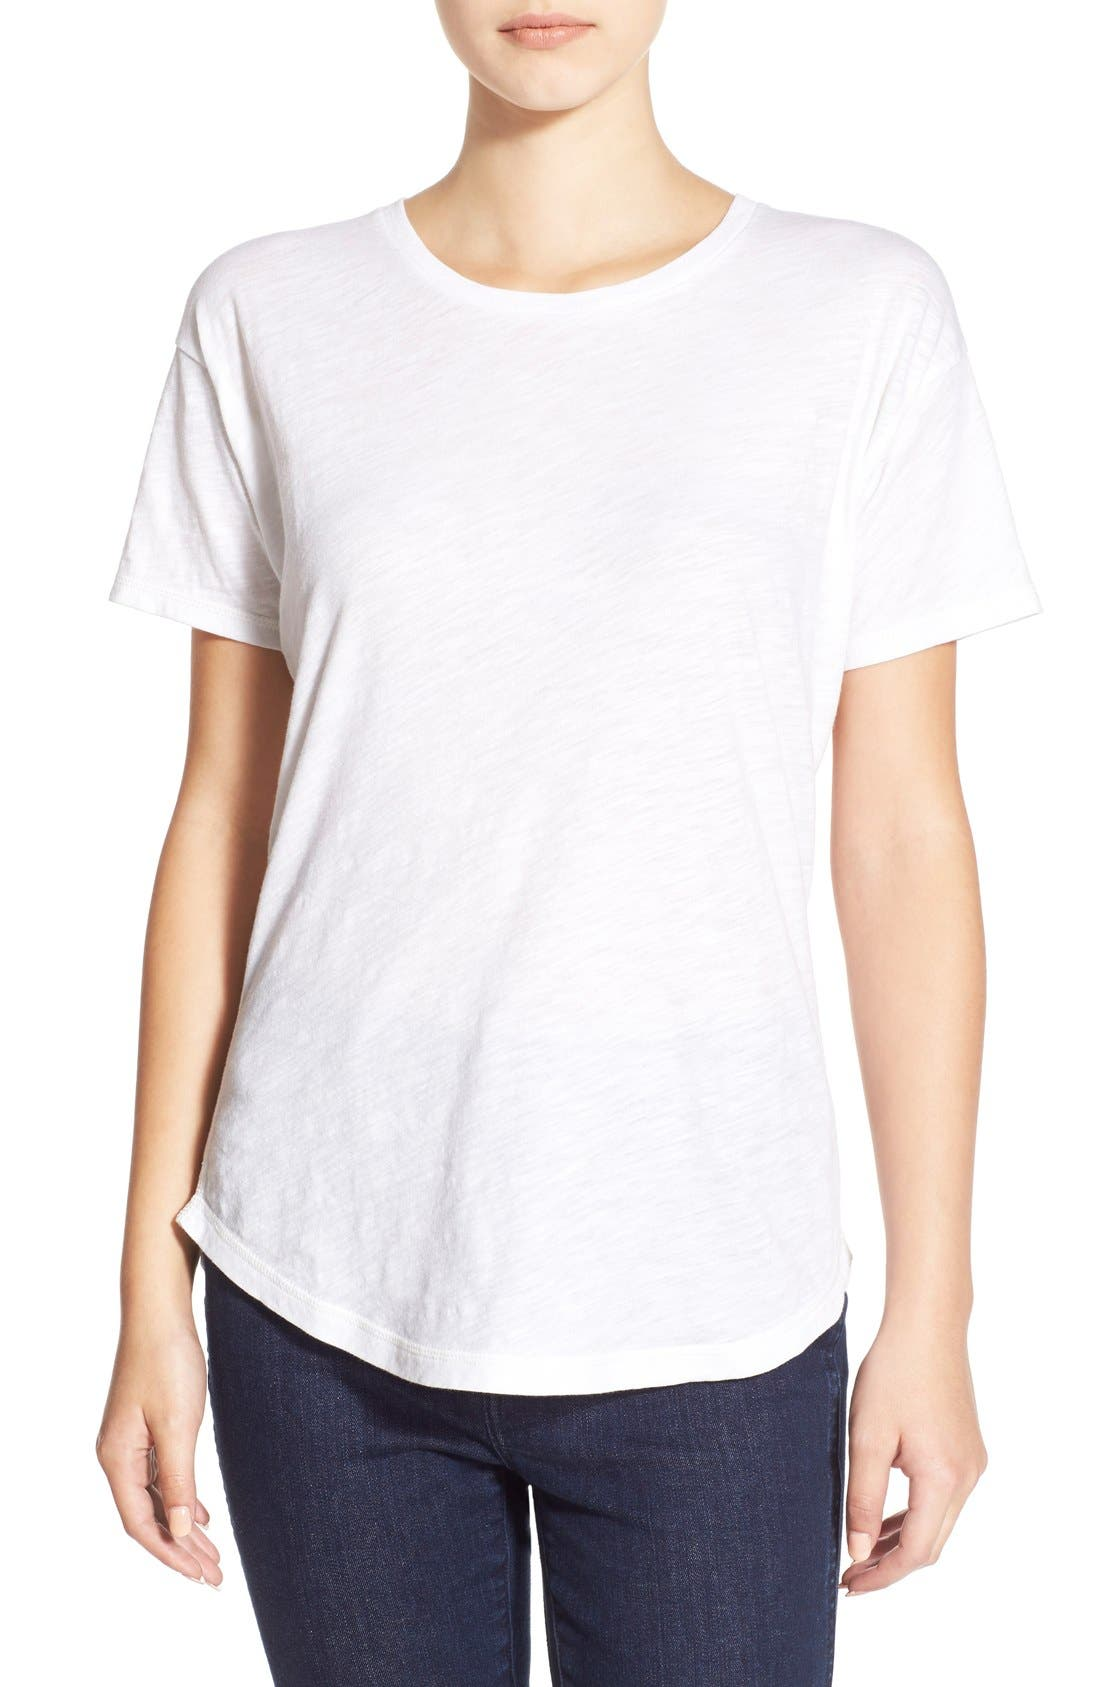 Madewell 'Whisper' Cotton Crewneck Tee